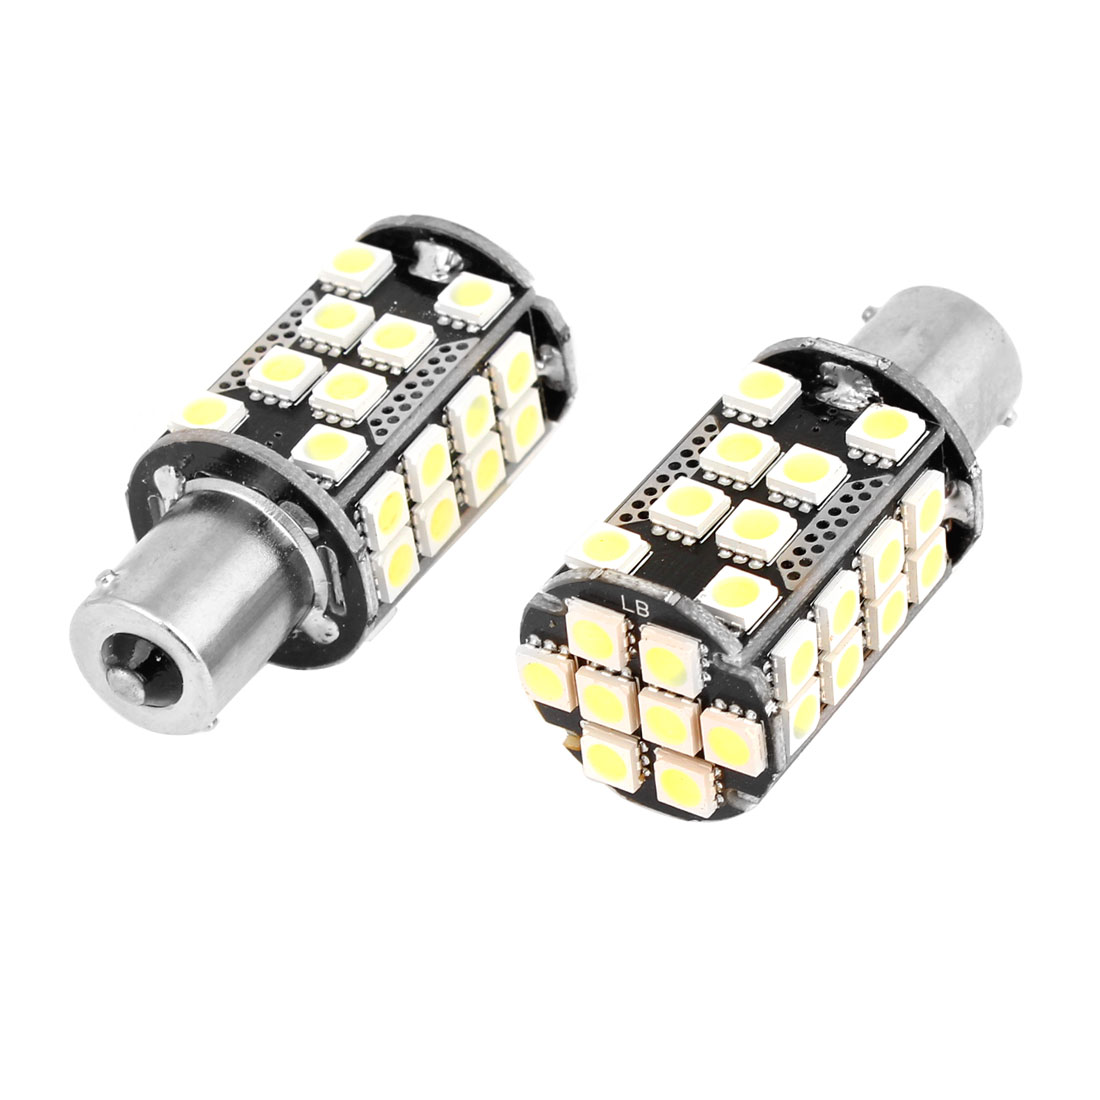 Pair No Error 1156 40 5050 SMD LED Car Truck Turn Indicator Light White